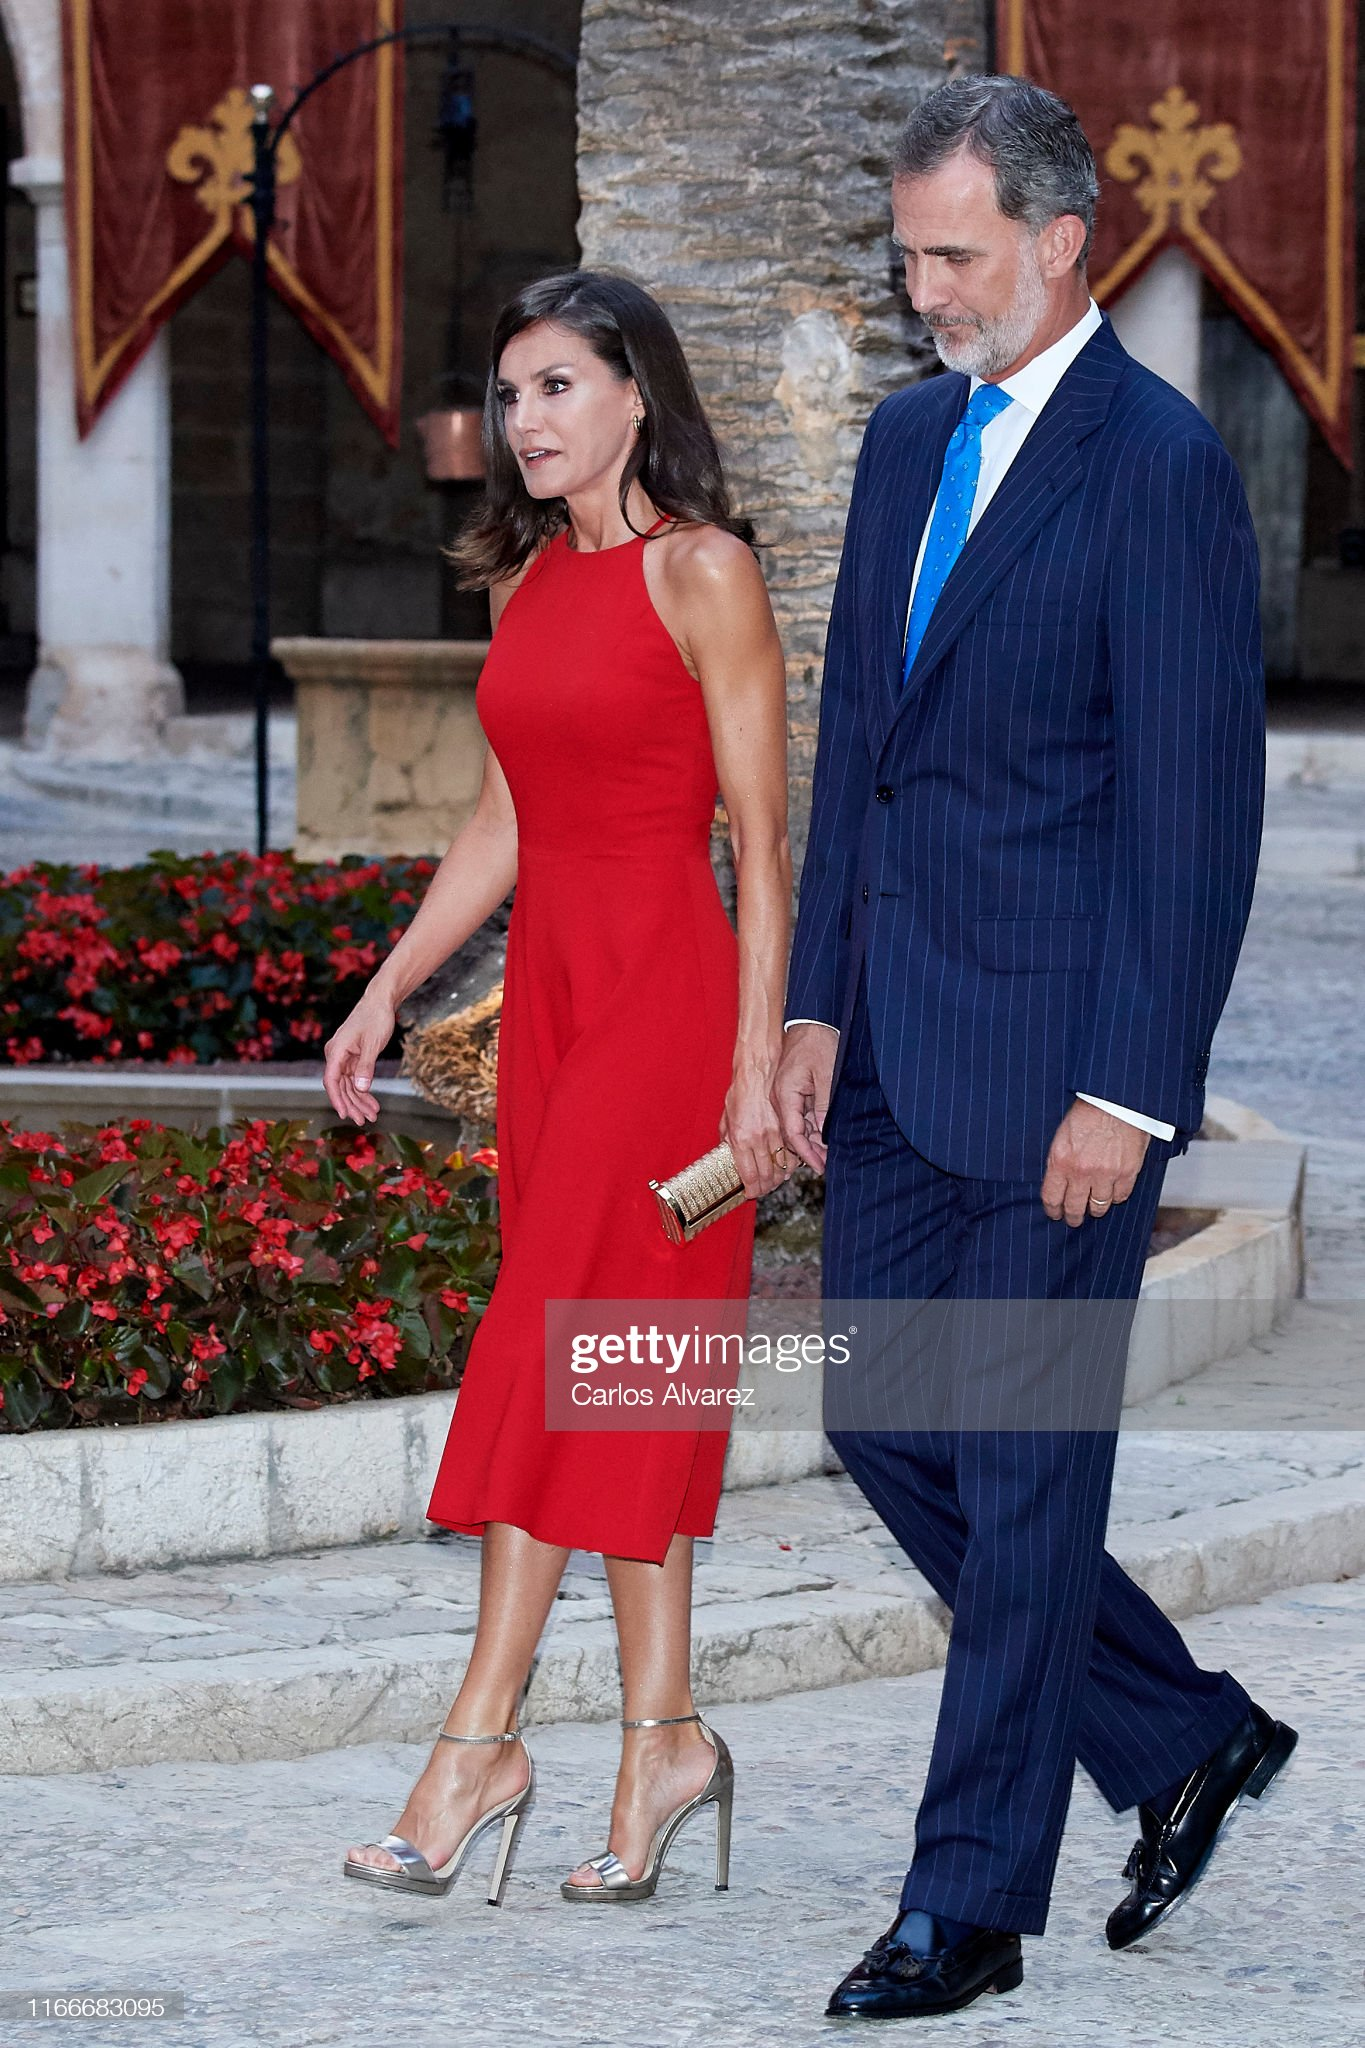 https://media.gettyimages.com/photos/king-felipe-vi-of-spain-and-queen-letizia-of-spain-host-a-dinner-for-picture-id1166683095?s=2048x2048